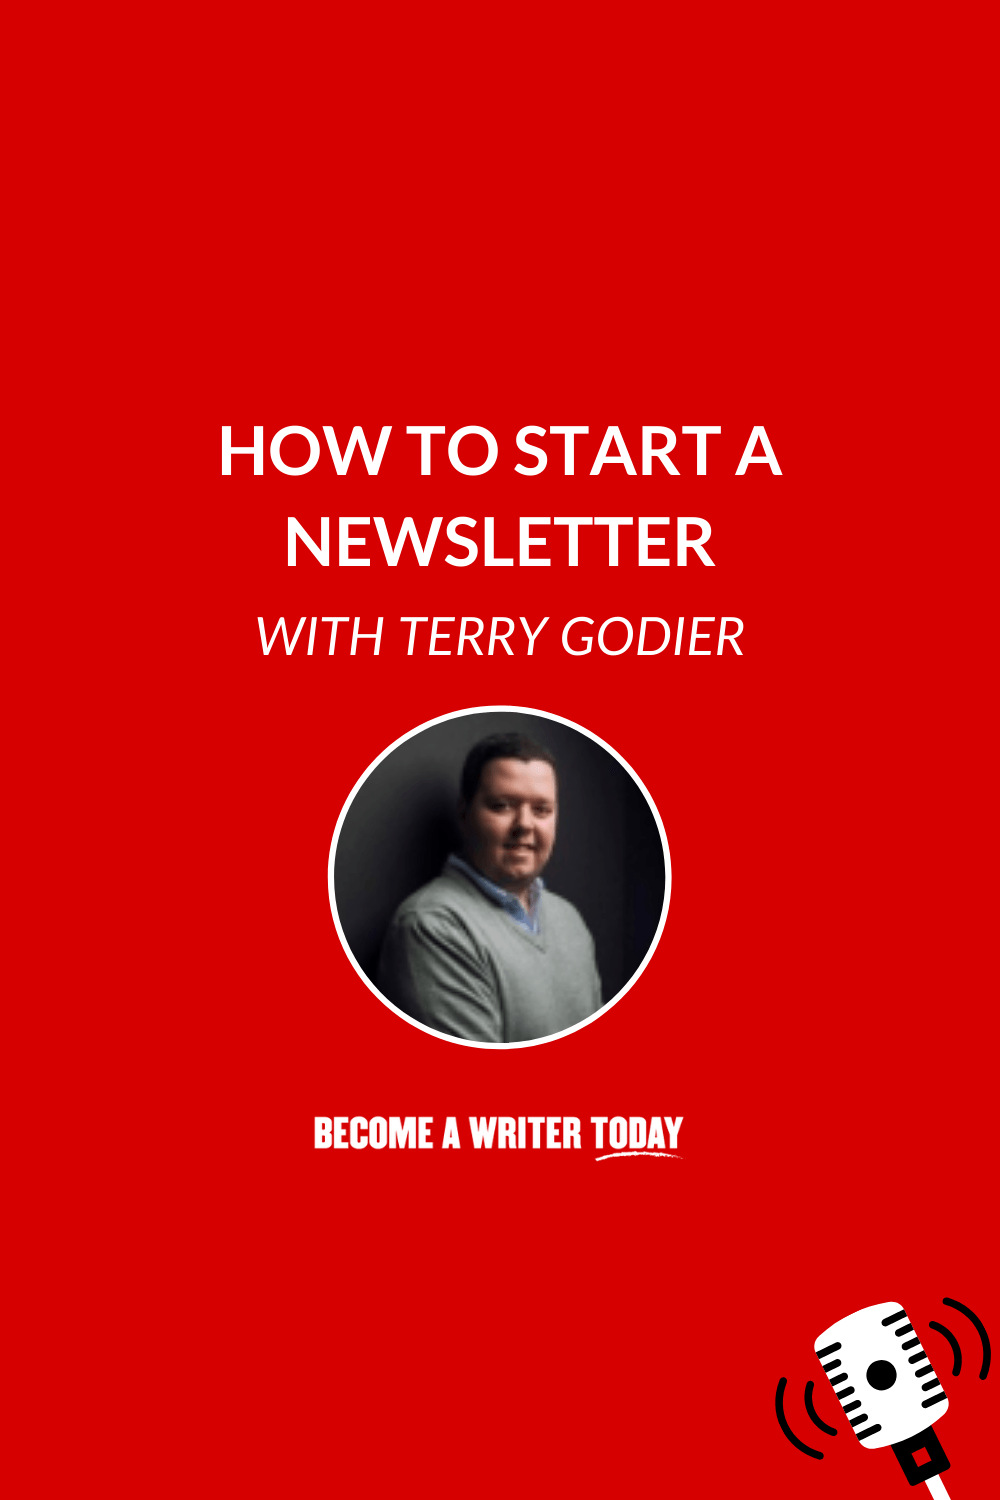 How To Start a Newsletter Readers Love With Terry Godier of Indie Mailer